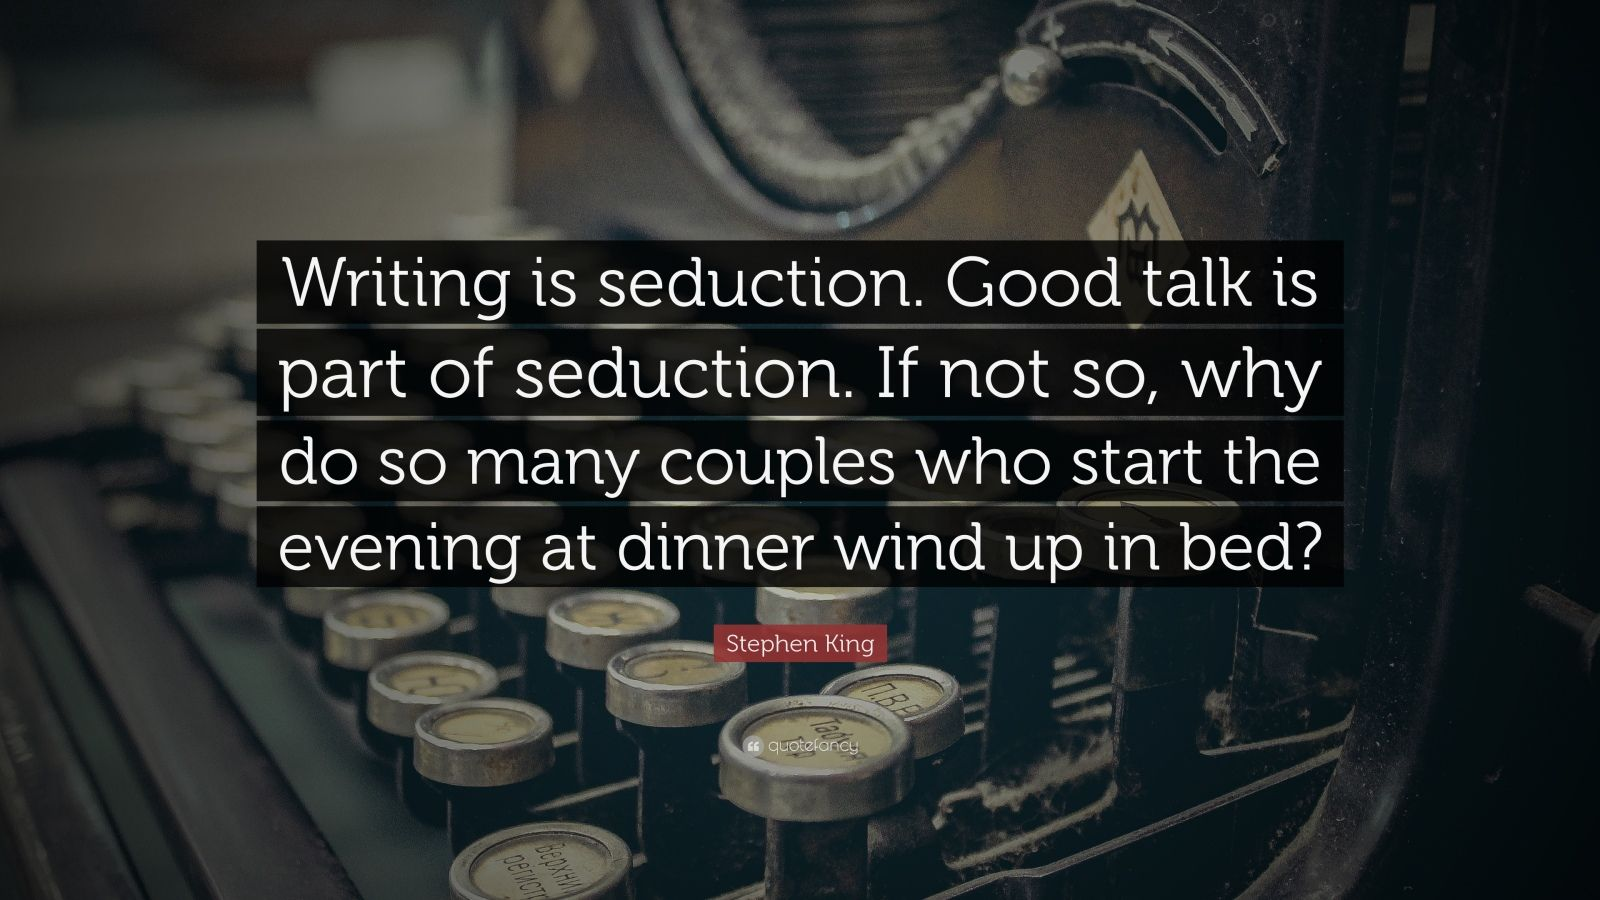 """Stephen King Quote: """"Writing is seduction. Good talk is part of seduction. If not so, why do so many couples who start the evening at dinner wind up in bed?"""""""